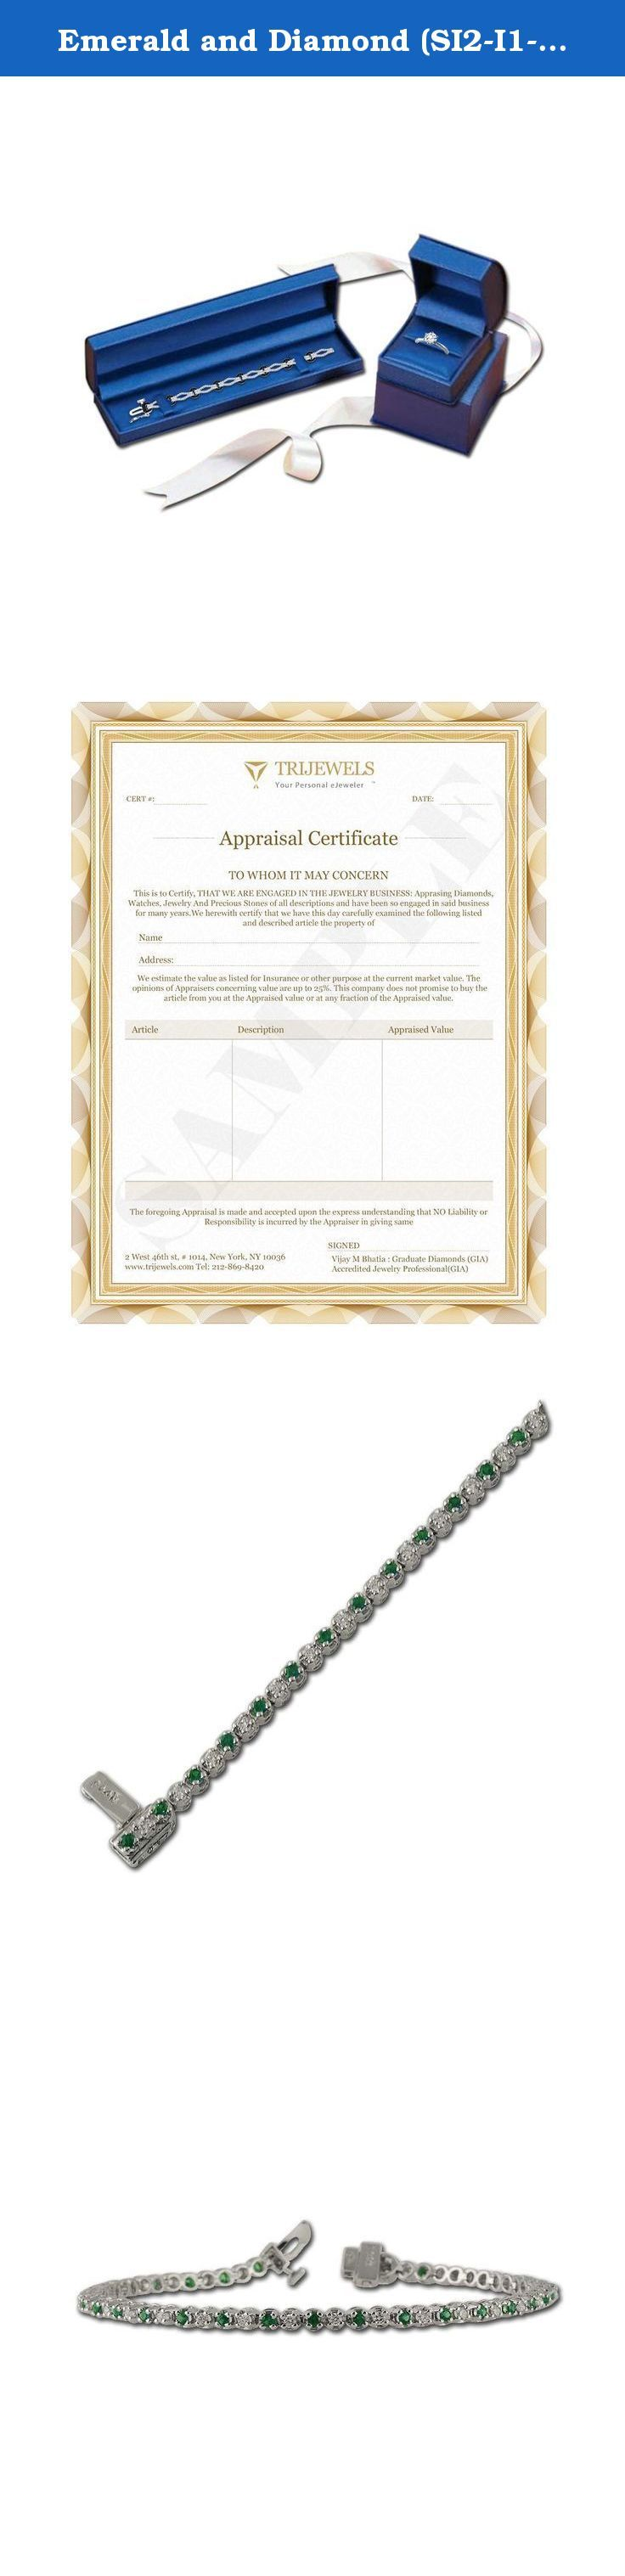 Emerald and Diamond (SI2-I1-Clarity, G-H-Color) Tennis Bracelet 1.32 ct tw in 14K White Gold. This is a Beautiful 1.32 ct tw Tennis Bracelet with 0.66 ct tw Diamond (SI2-I1-Clarity, G-H-Color) & 0.66 ct tw Emerald (I1-I2-Clarity, Green-Color) in 14K White Gold.There are total 33 Round Diamond & 33 Round Emerald which are beautifully set using Prong Setting.The Length of the Bracelet is 7 Inches.This Bracelet has Round Diamond & Emerald of 1.8 mm each.The birthstone of April Diamond…